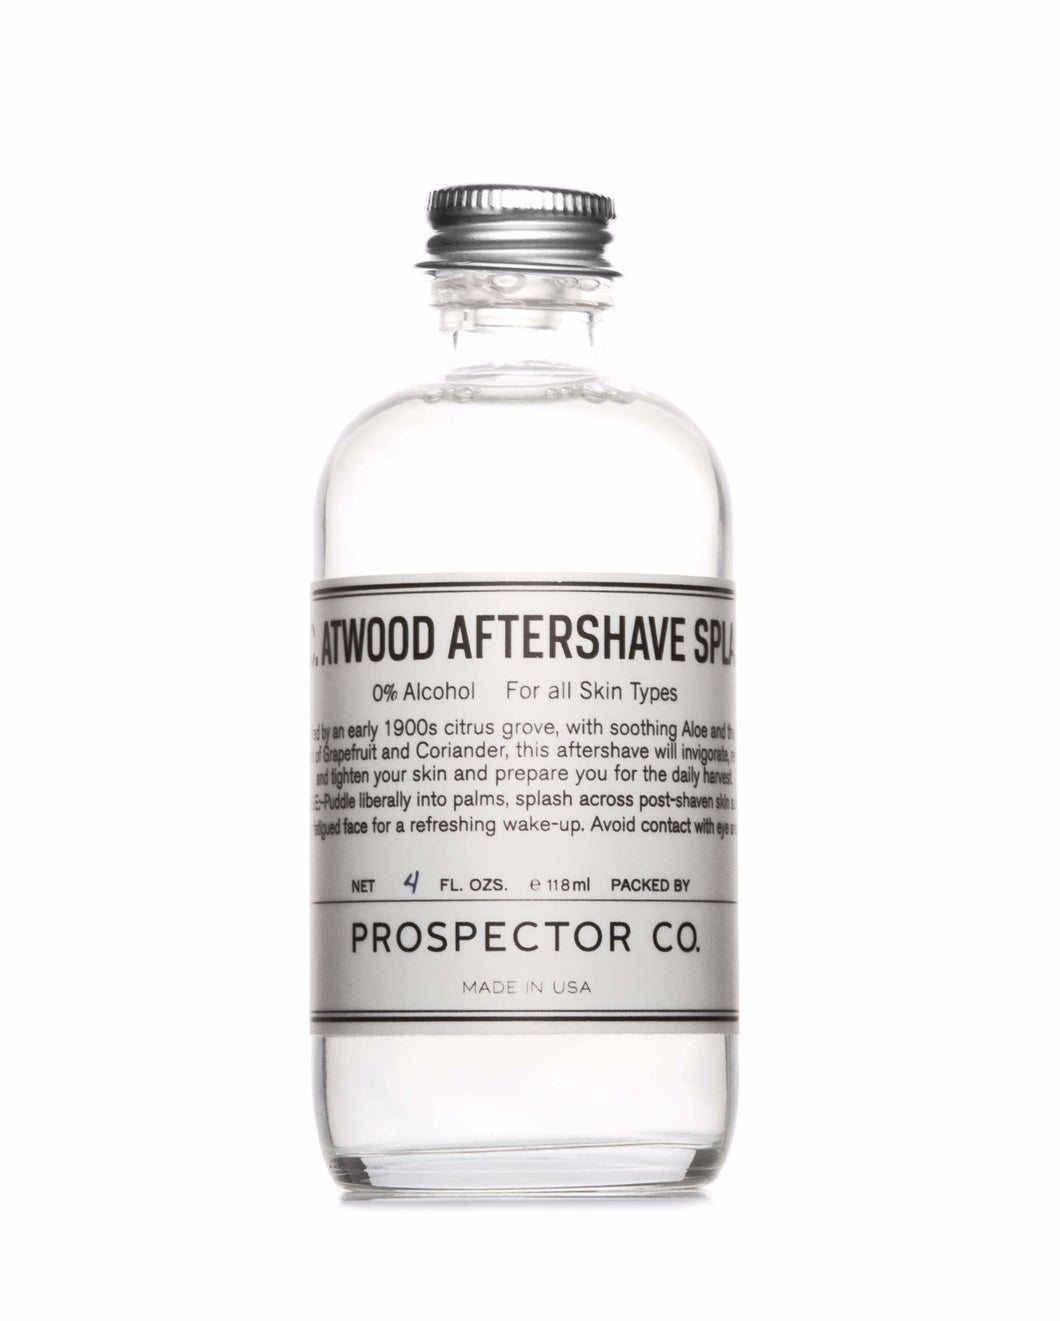 K.C. Atwood Aftershave